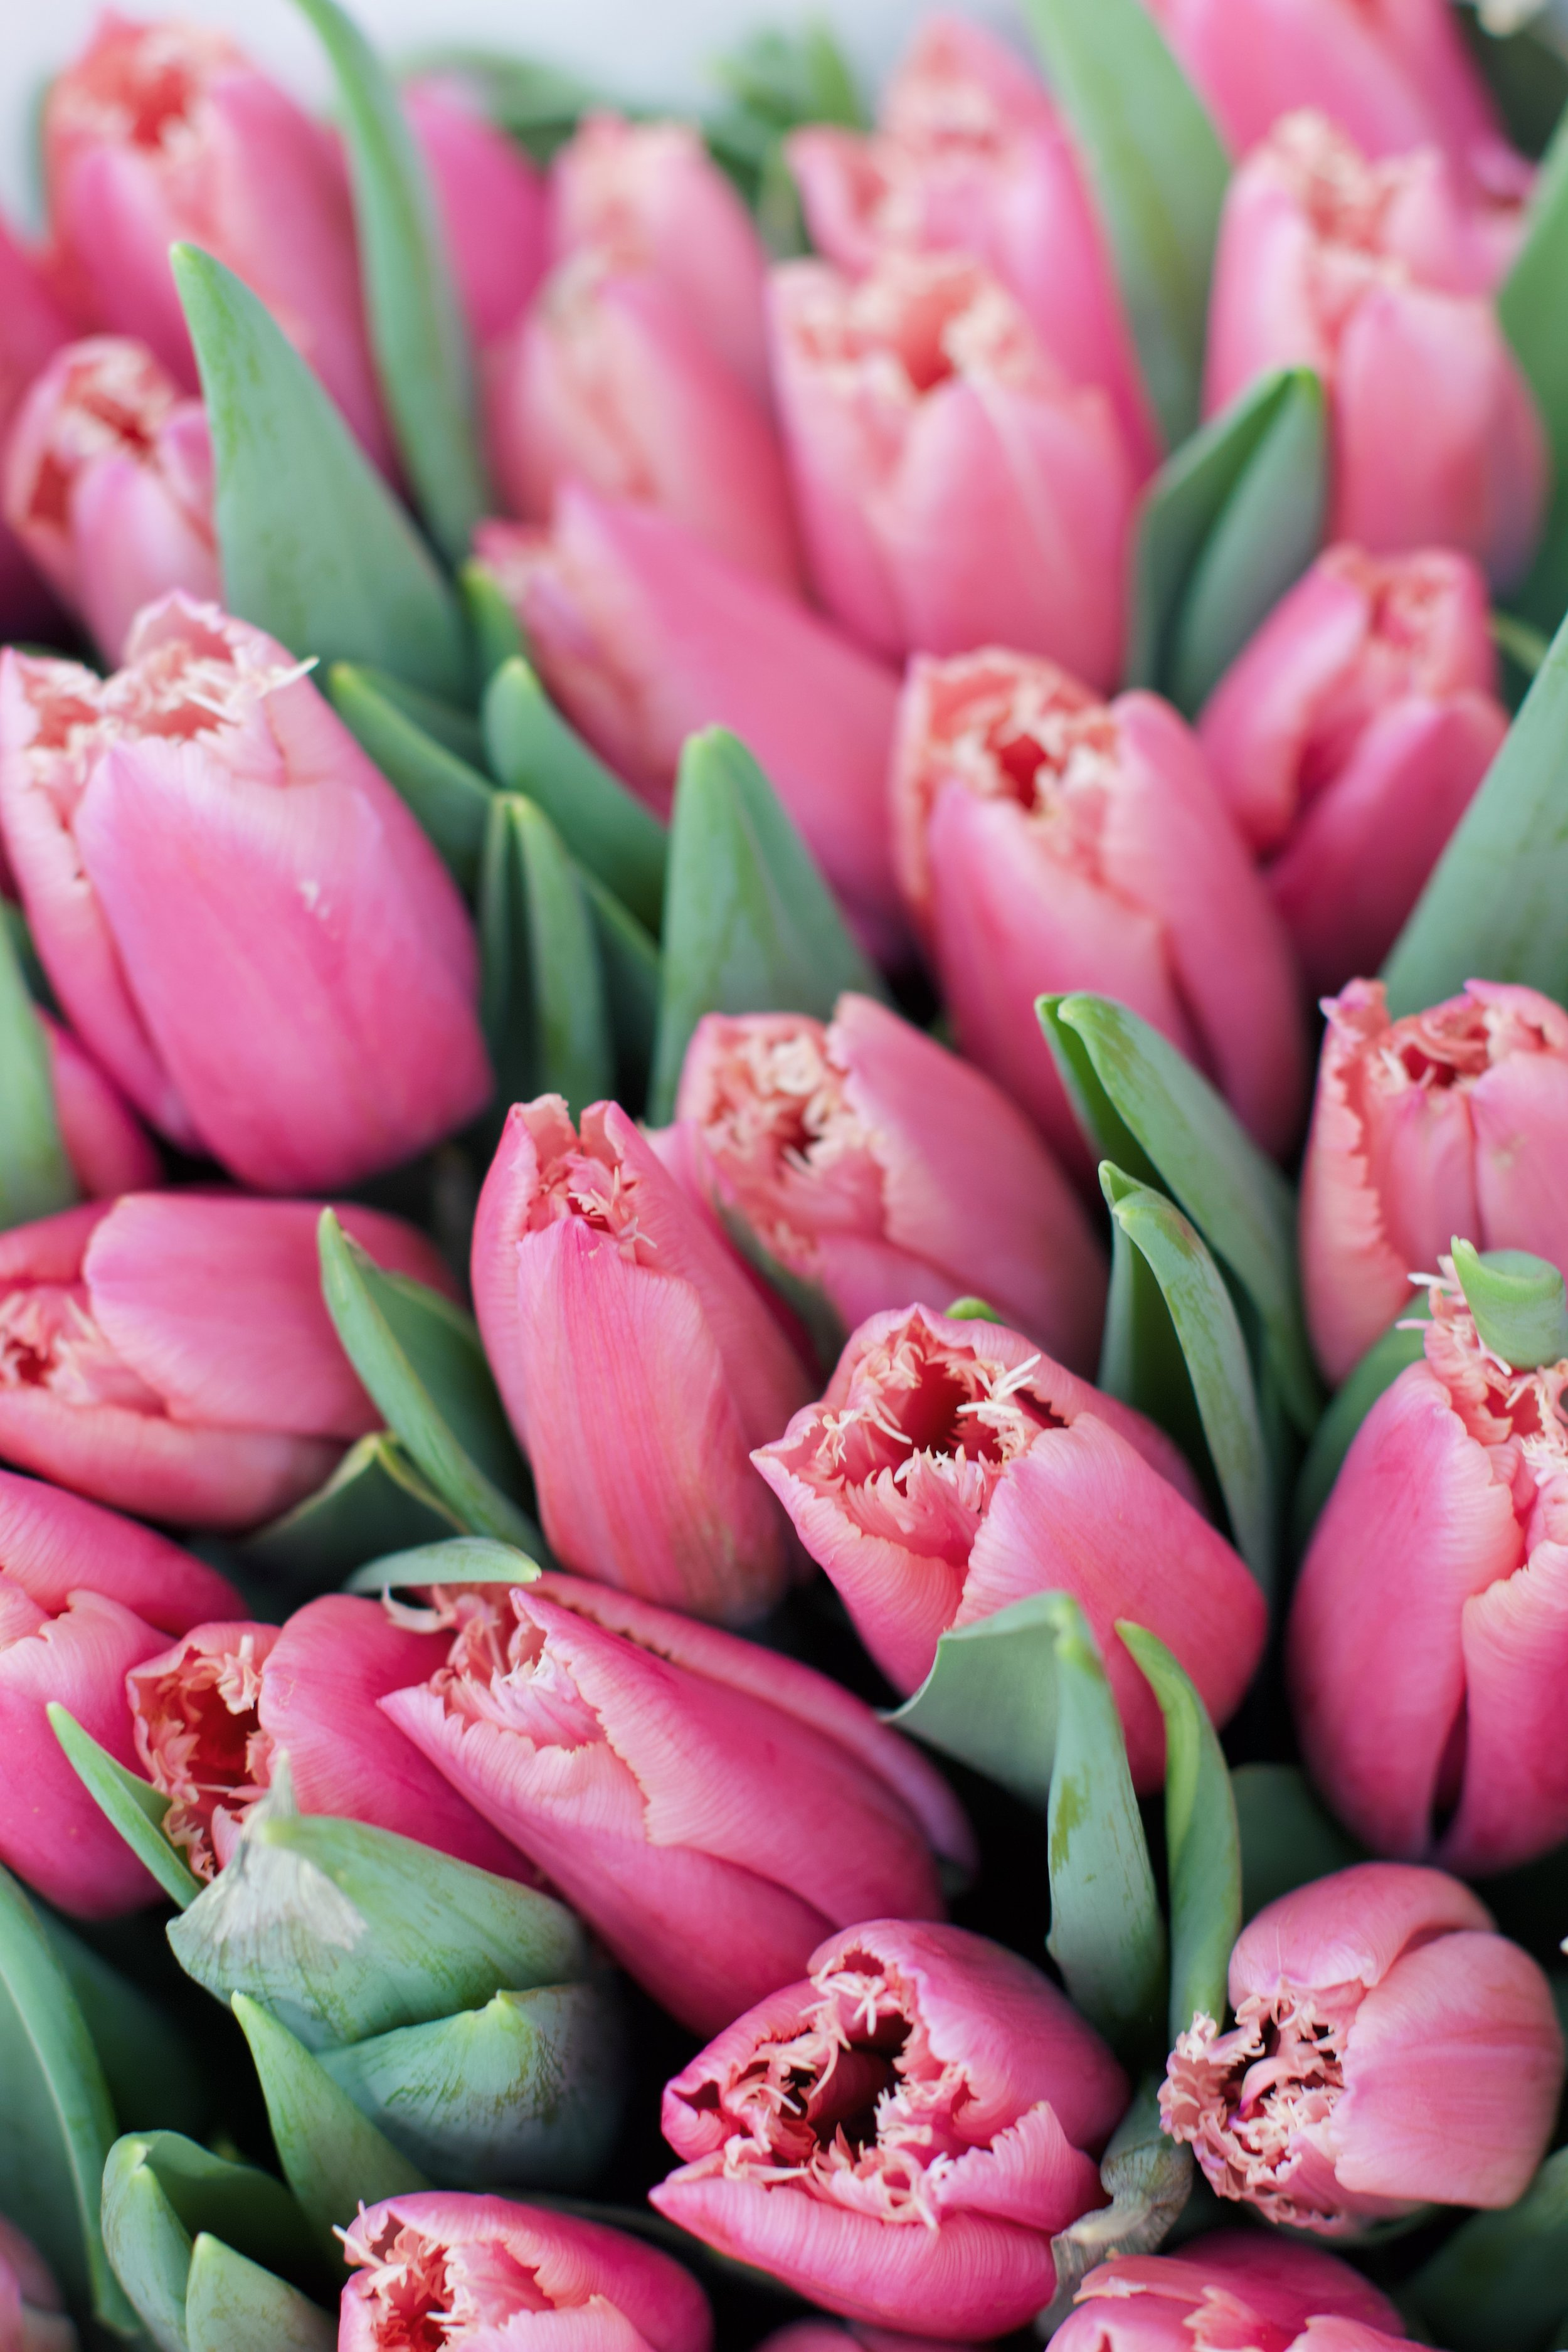 Our Amsterdam itinerary - how to spend a long weekend in Amsterdam during tulip season